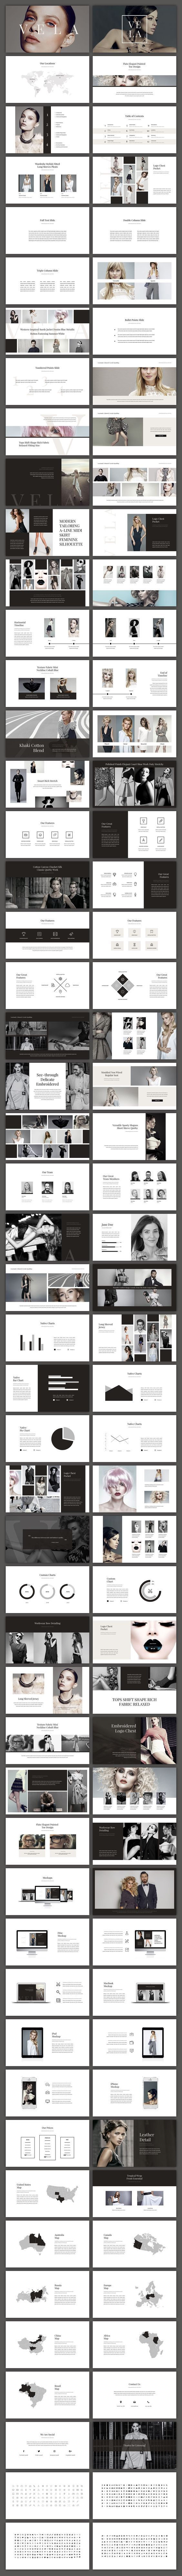 Vela Presentation Template  Vela Is An Elegant Simple And